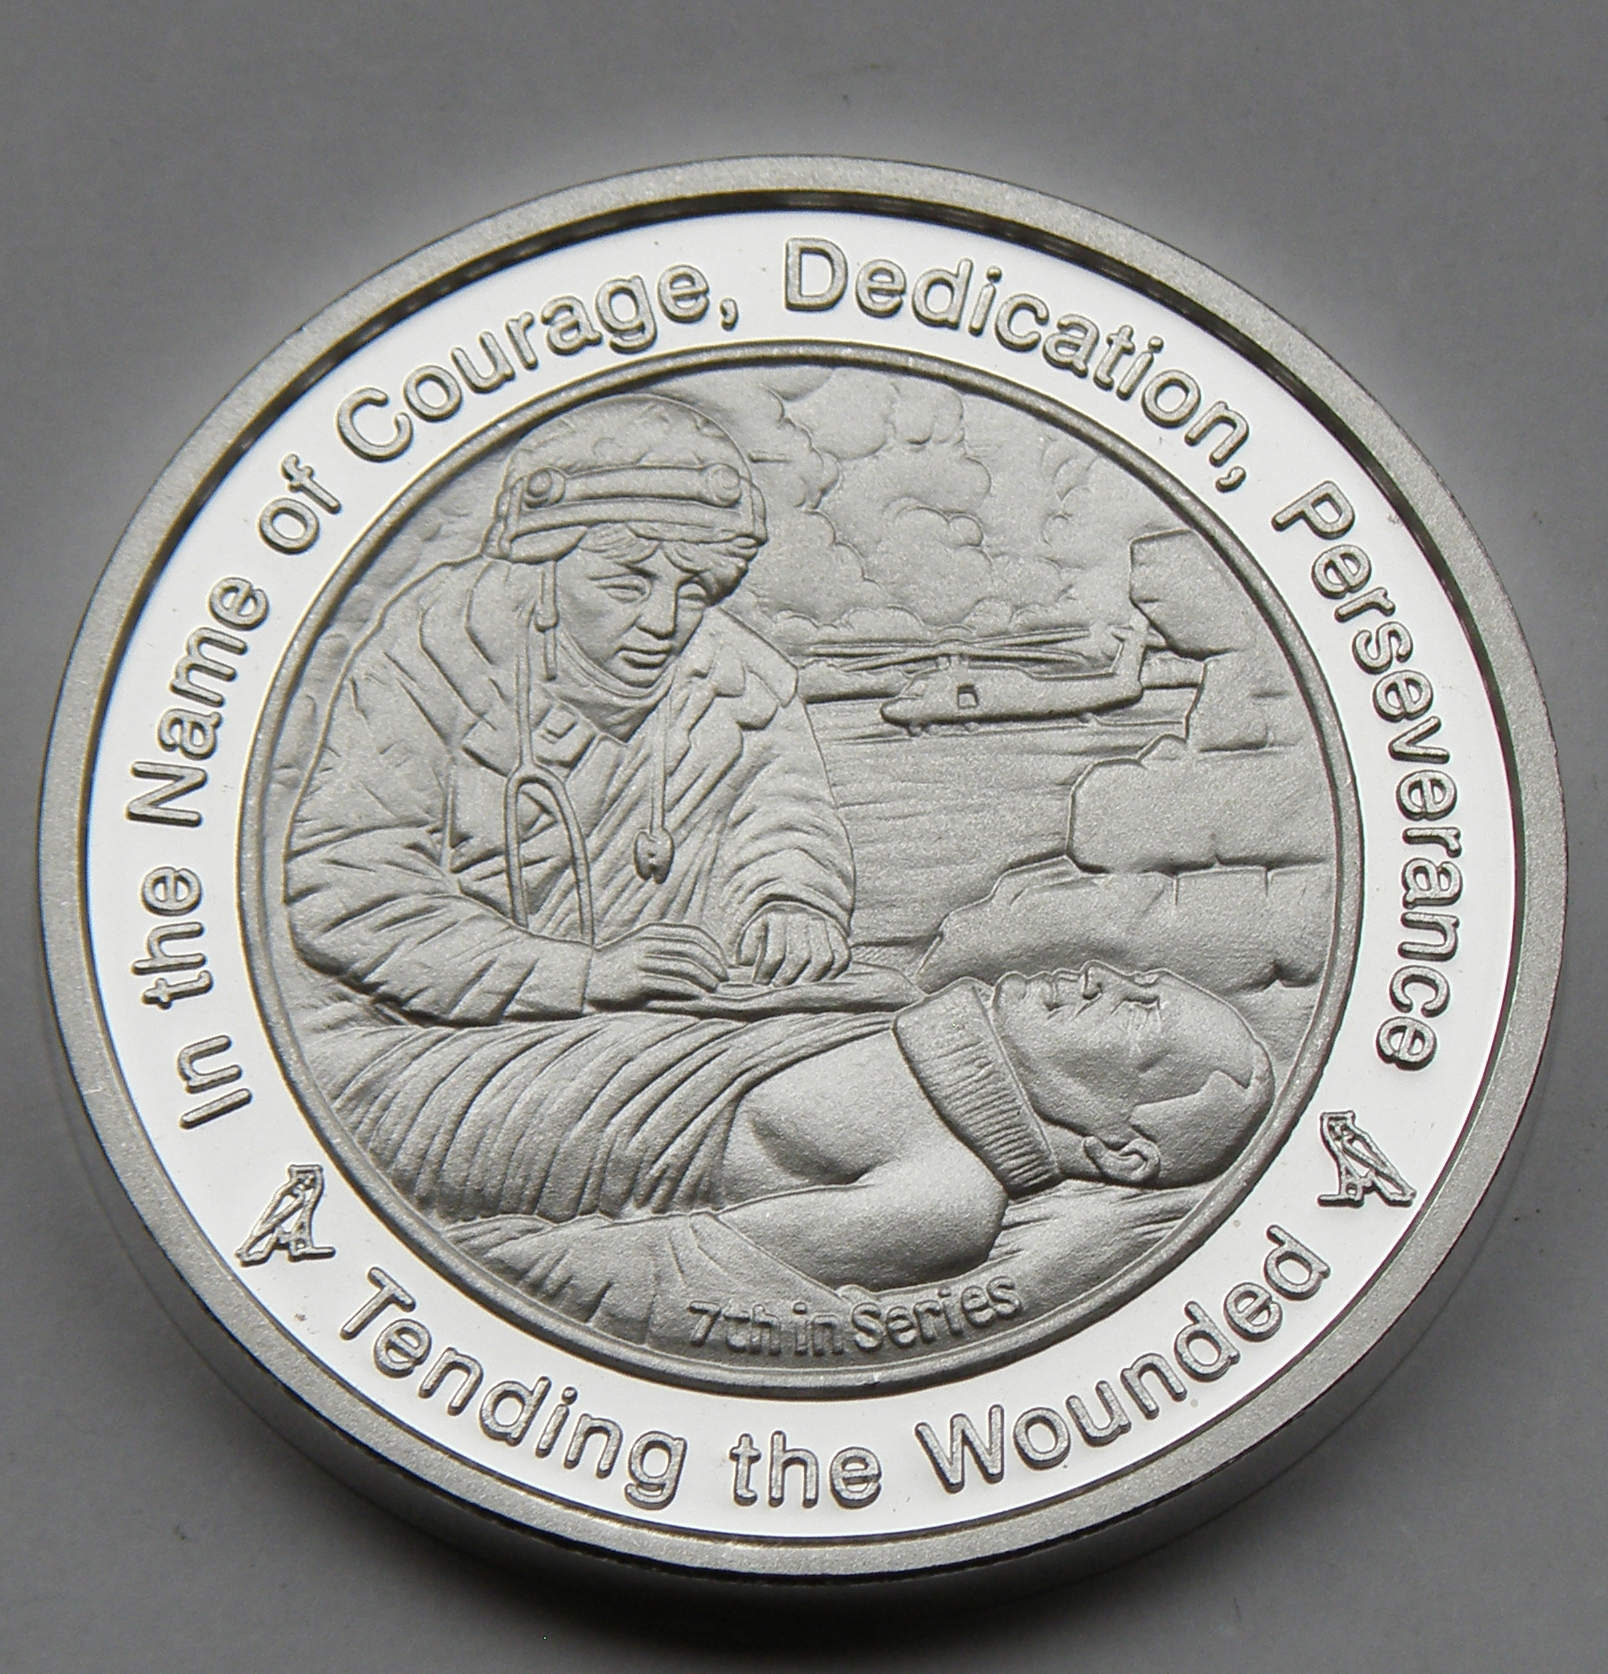 Coin 7 Tending the Wounded fine silver